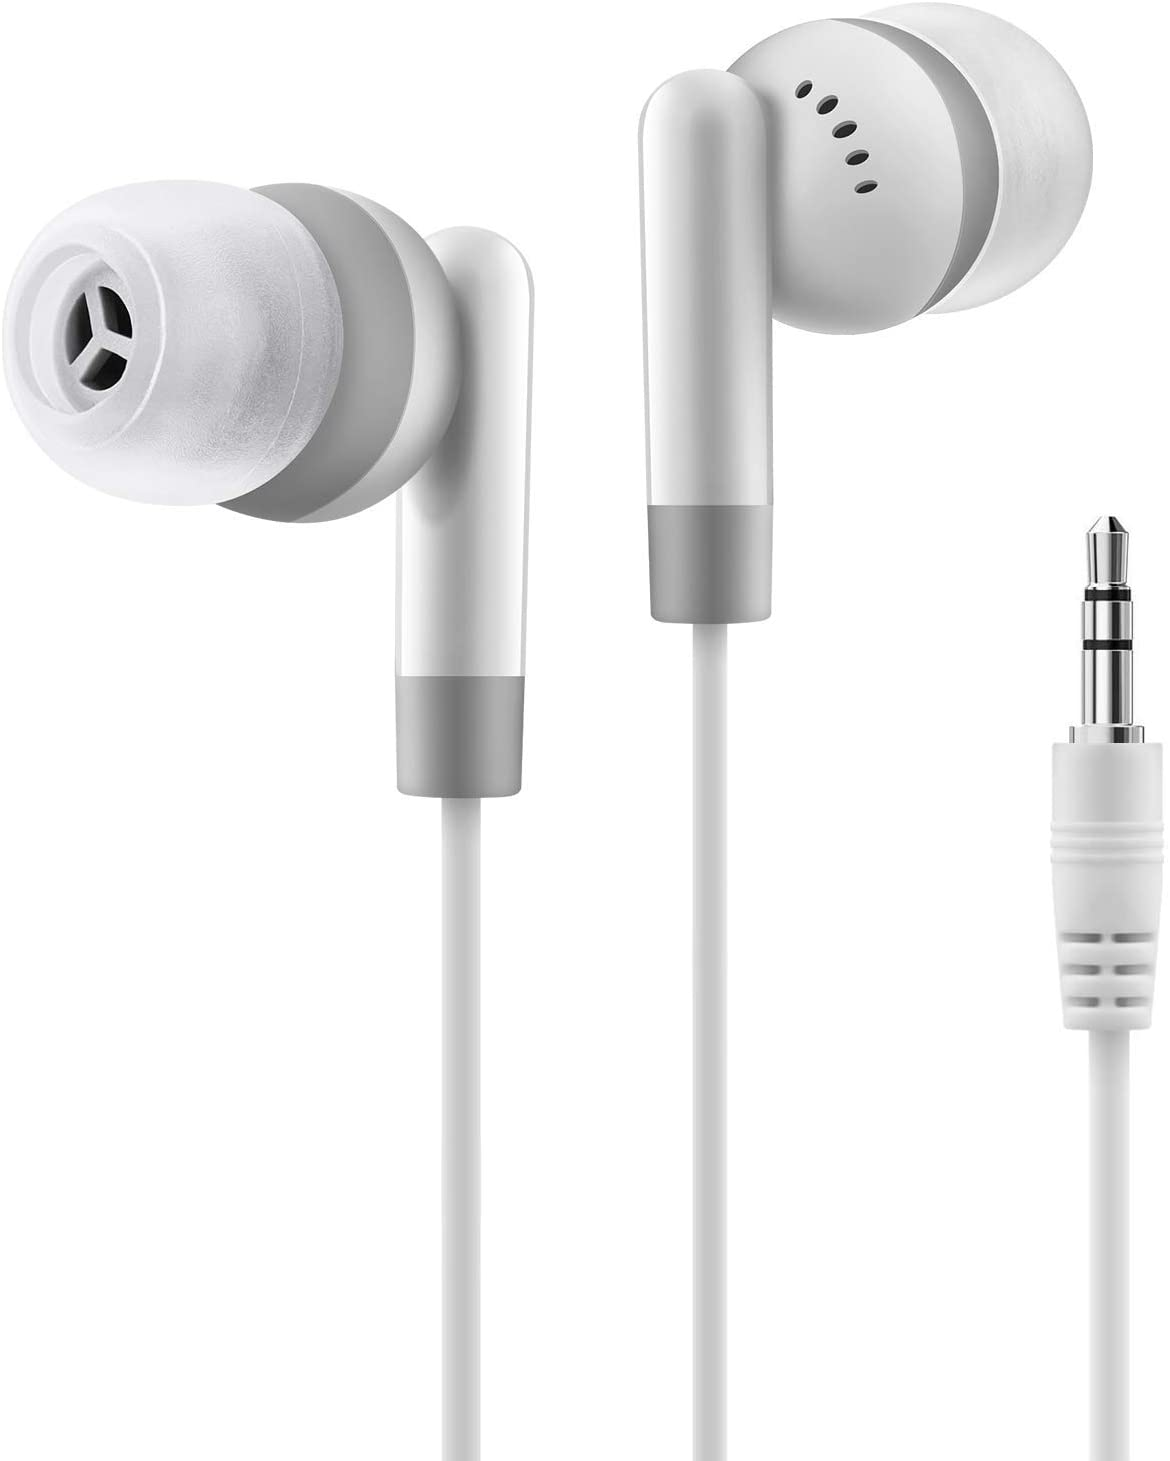 Super Bass Stereo in-Ear Wired Earphone Headset with Headphone